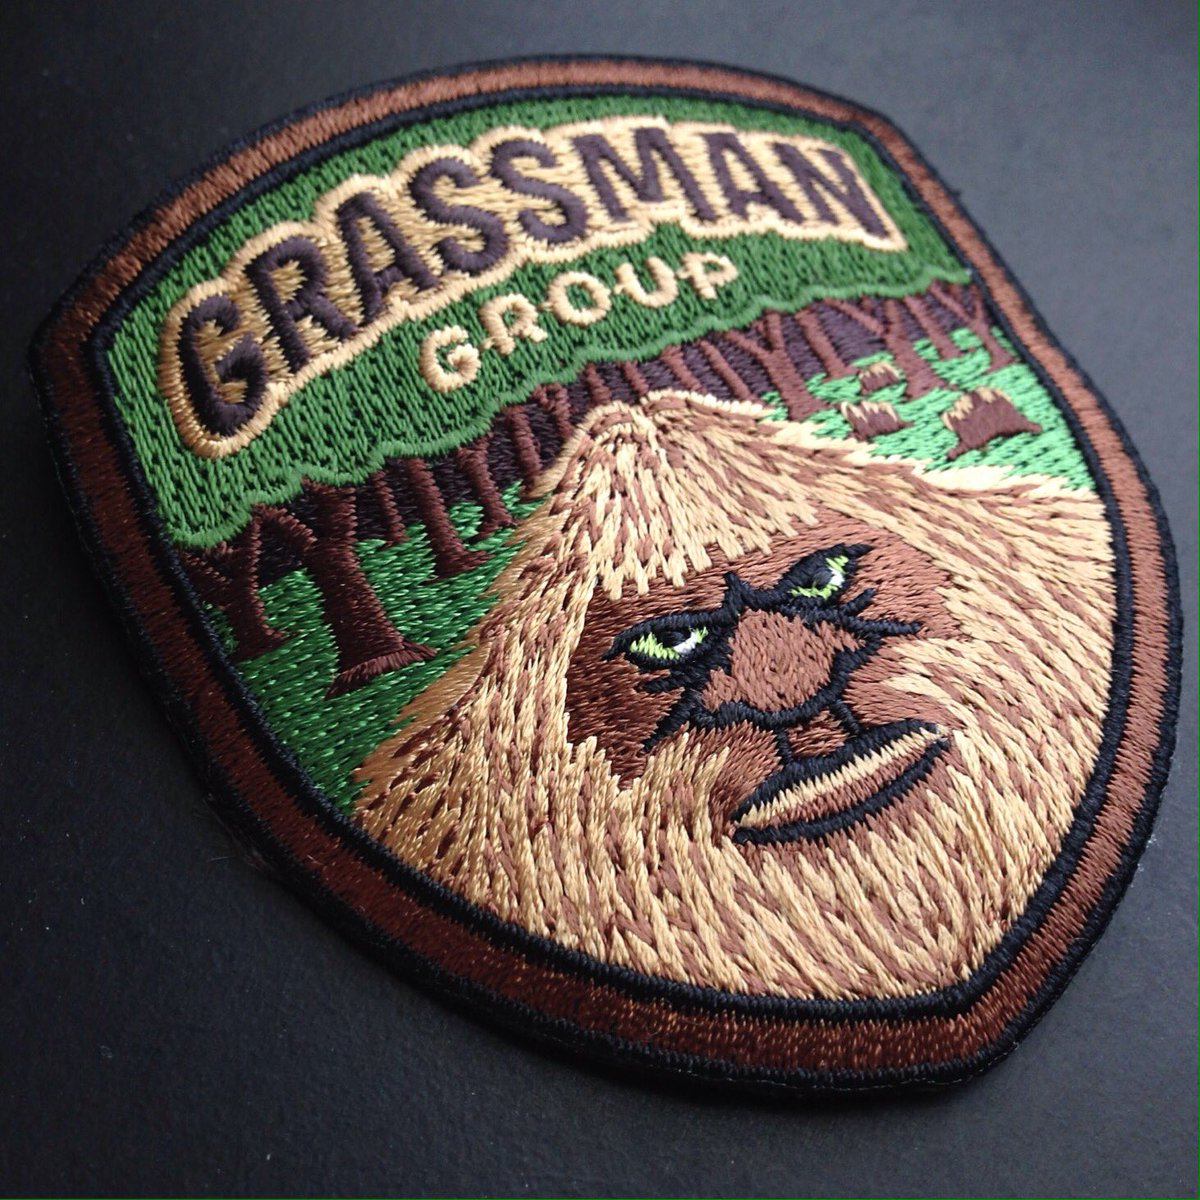 The Grassman Group patches arrived, and they look superb. Grassman = Ohio Bigfoot. #ohiobigfootconference https://t.co/VJQ5TqH87Q